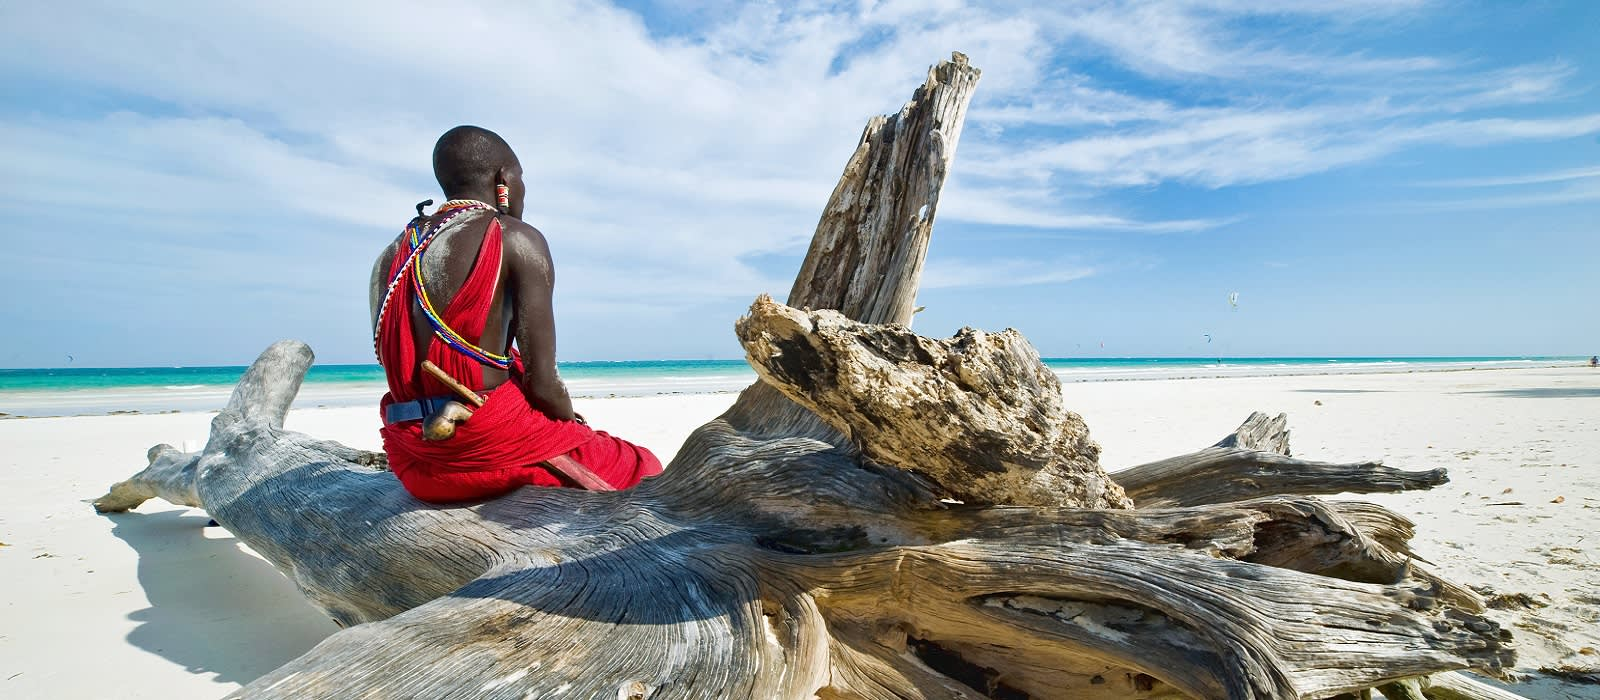 Enchanting Travels Africa Tours Maasai sitting by the ocean on the beach